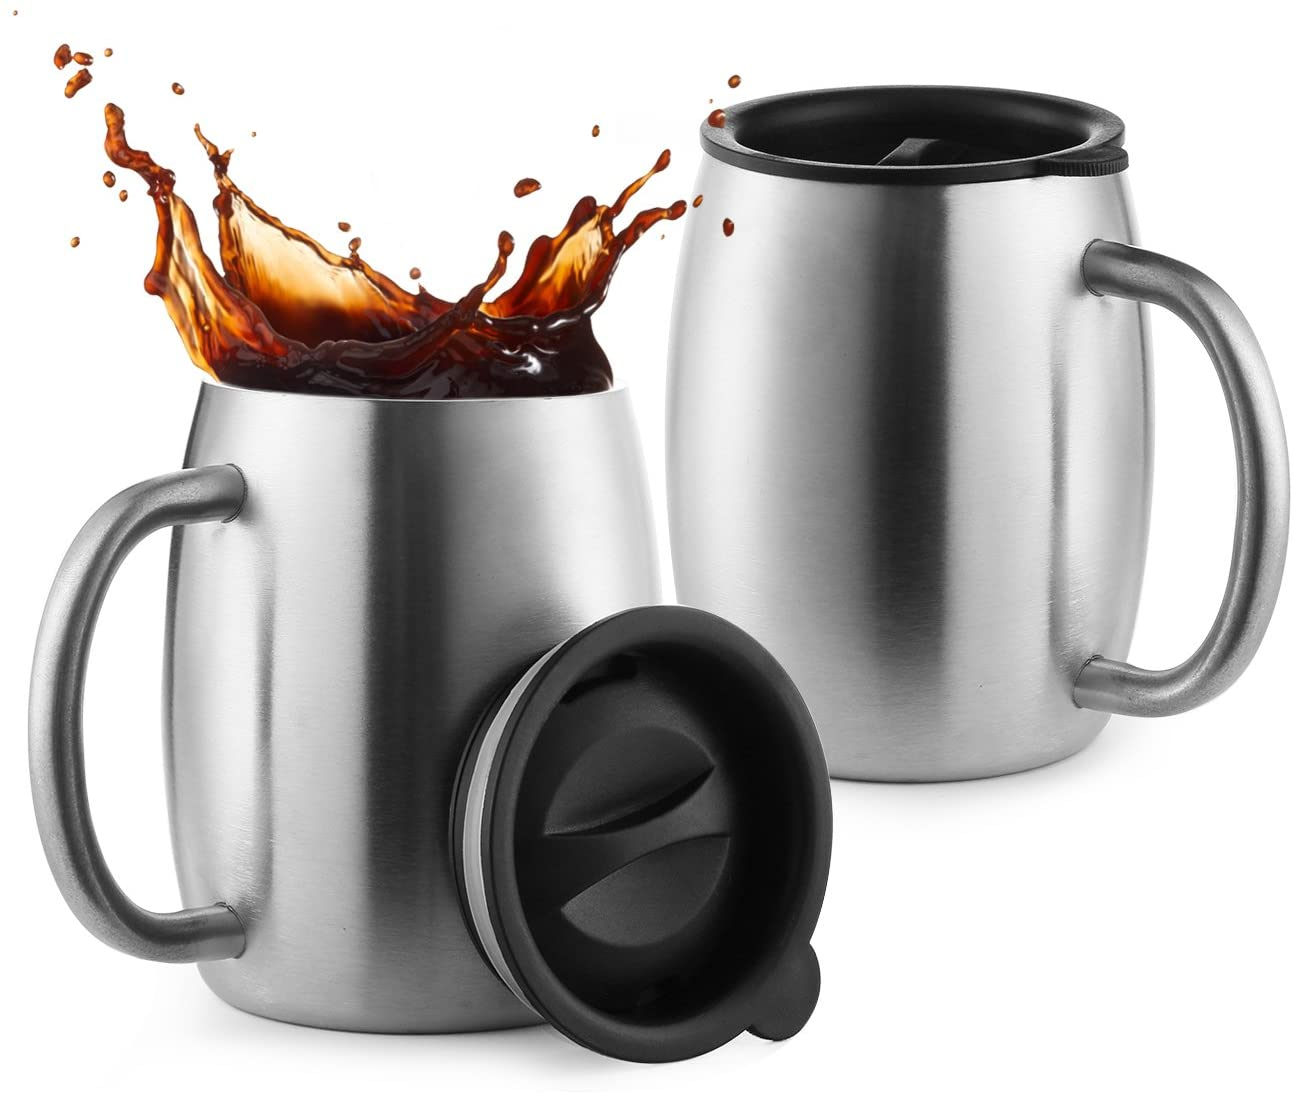 Stainless Steel Coffee Mugs with Lids 14 Oz Double Walled Insulated Coffee Beer Mugs